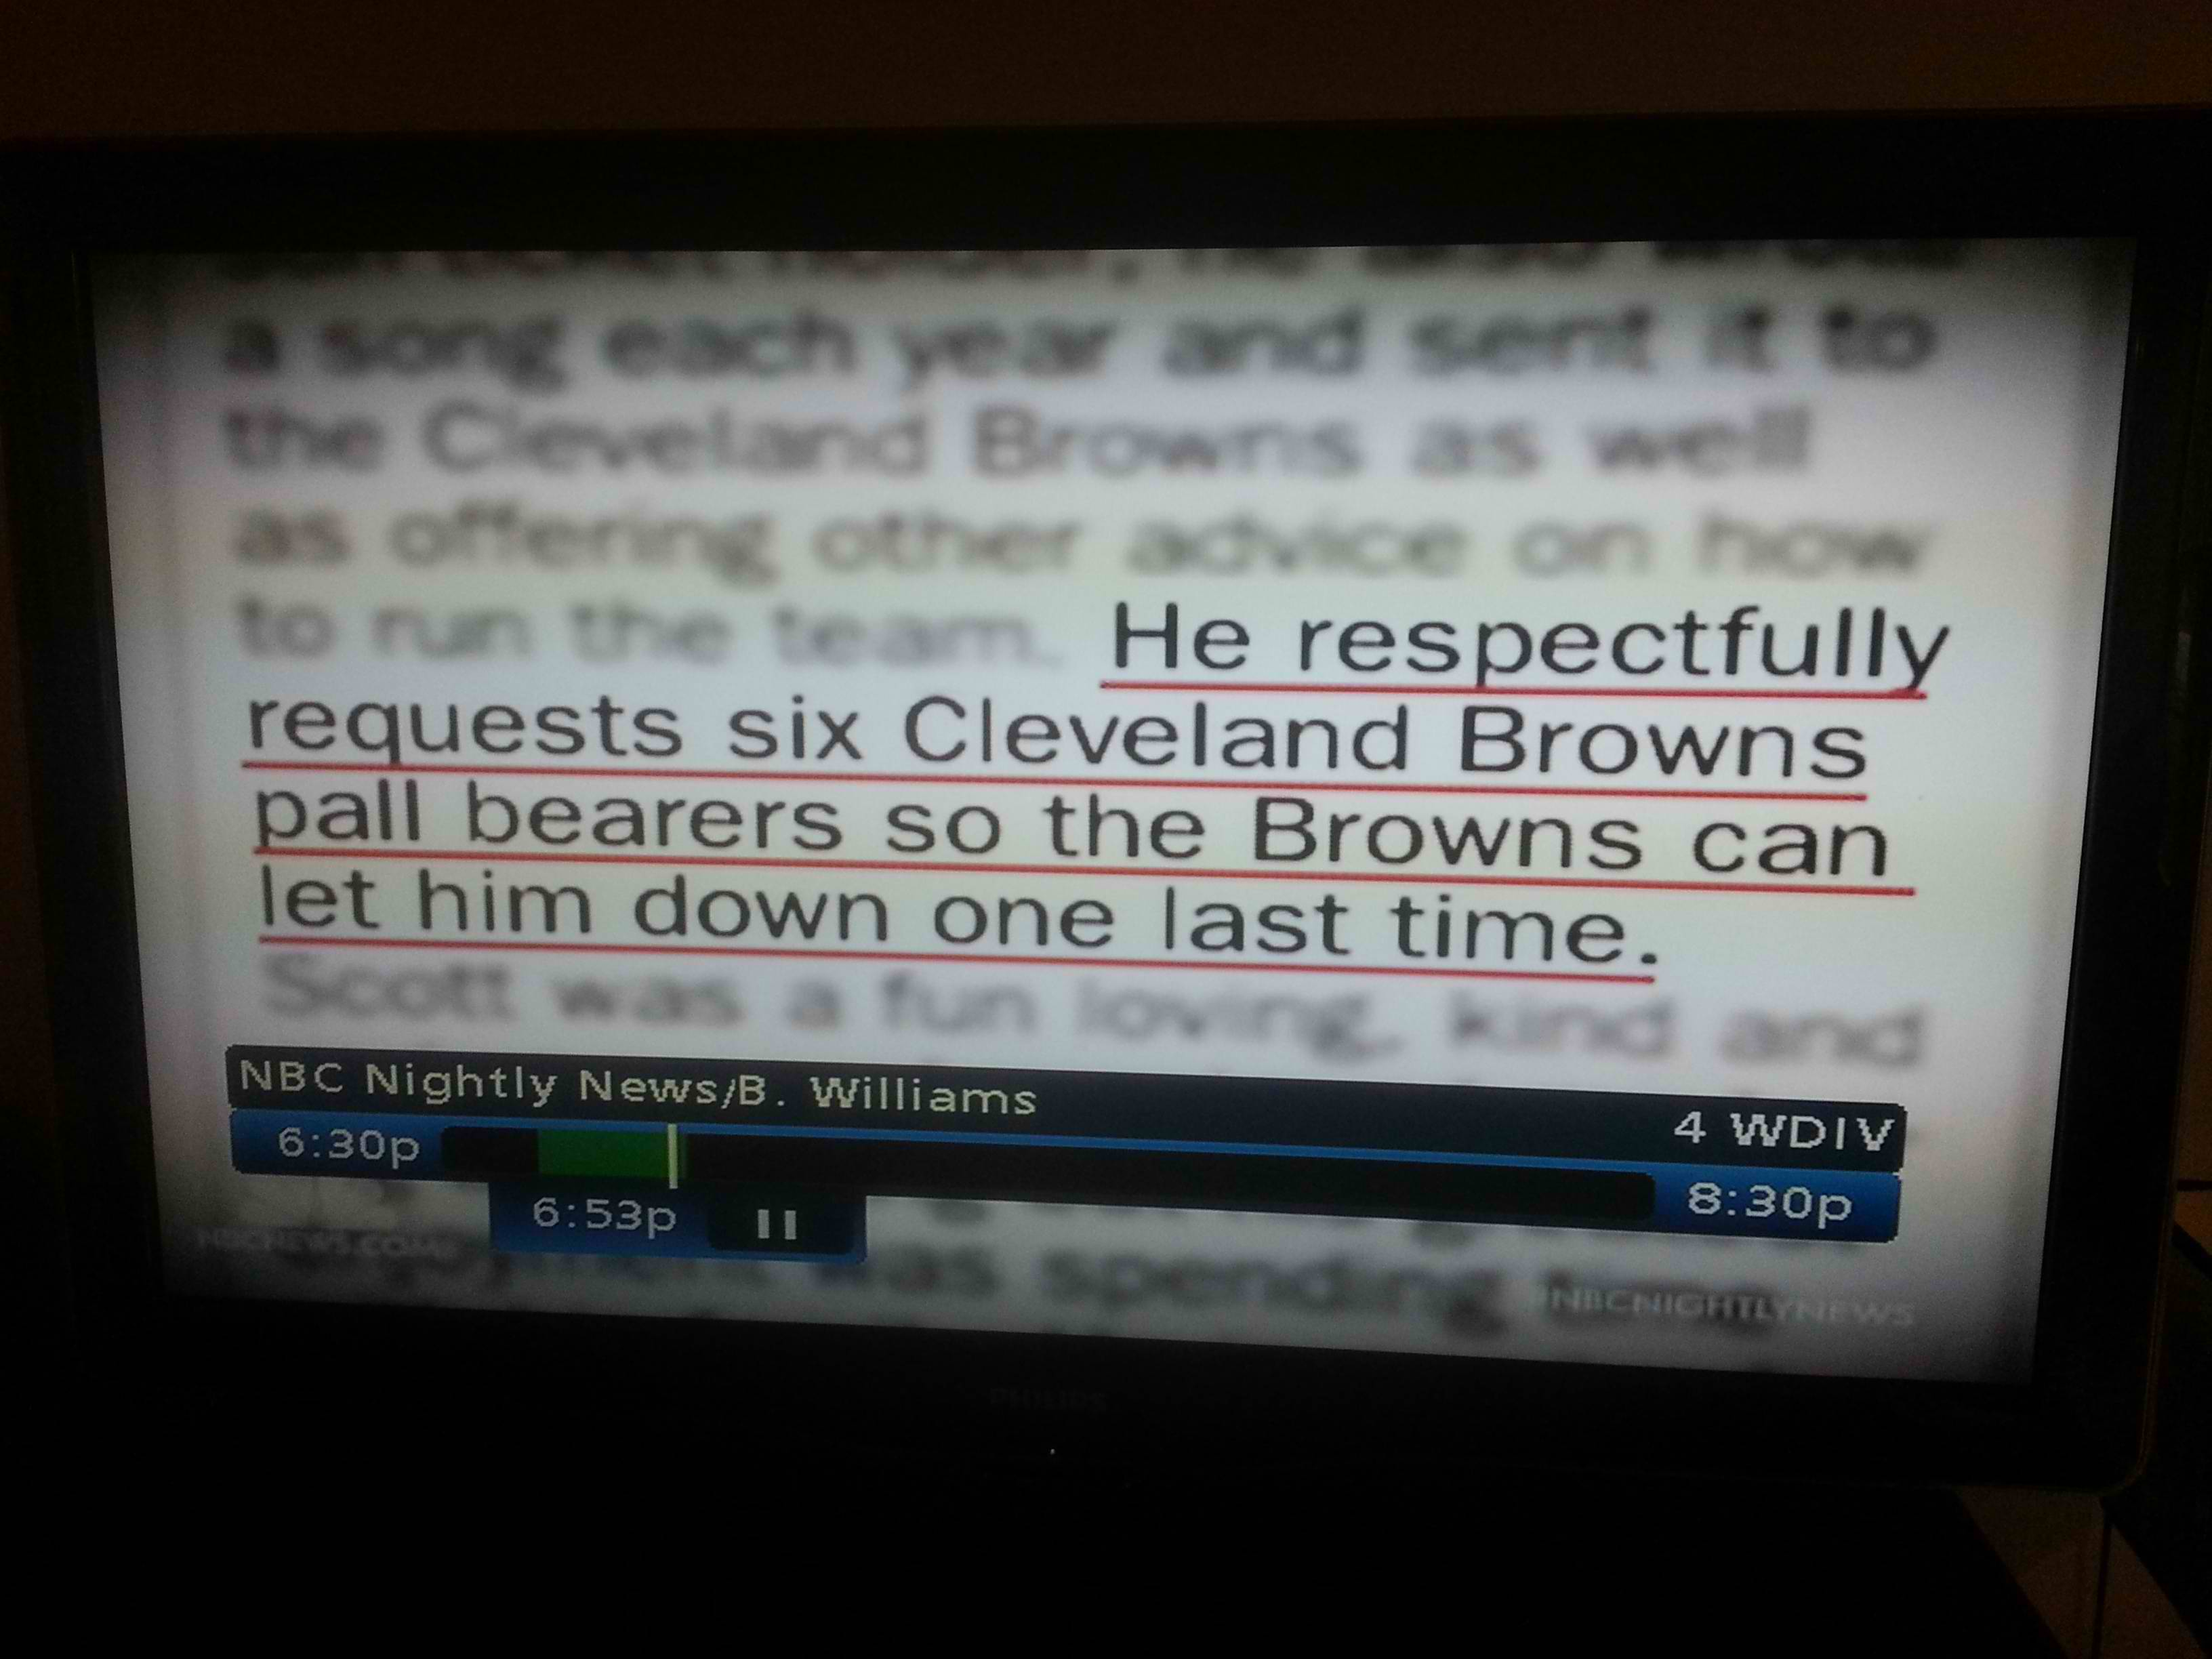 Ohio man's obituary throws one last insult at the Cleveland Browns. The Browns respond in an awesome way.